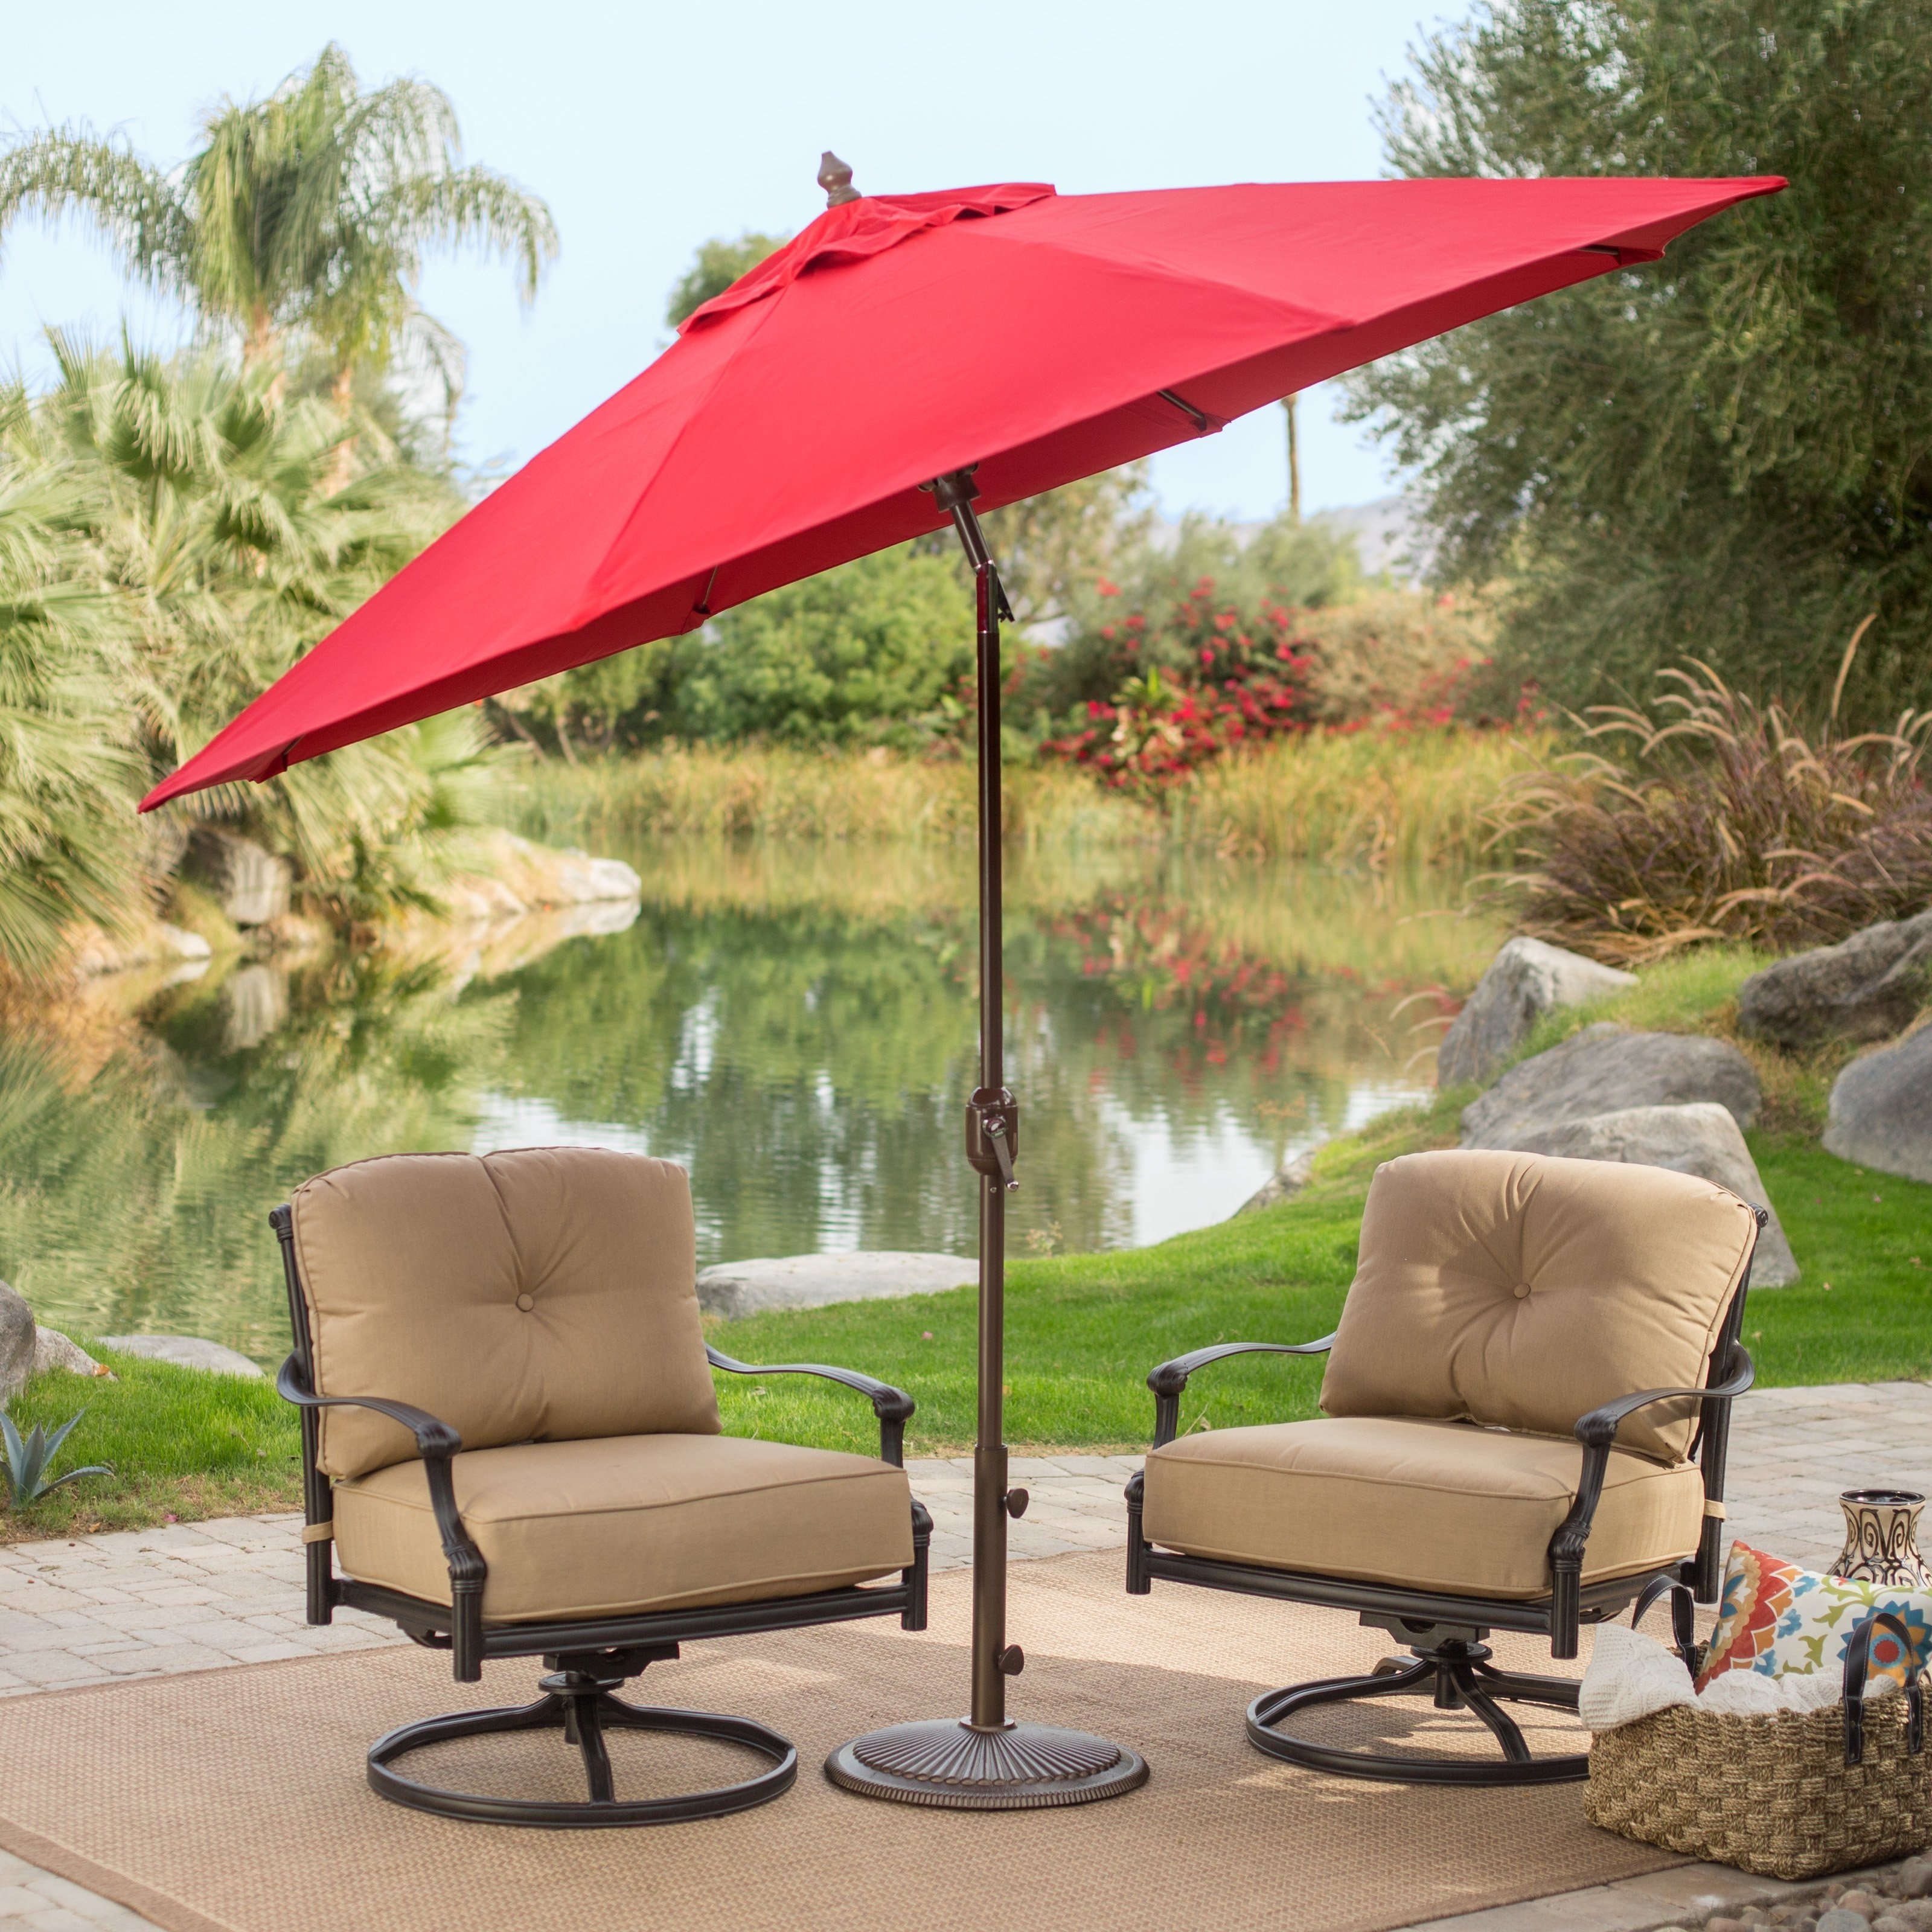 Commercial Patio Umbrellas Sunbrella Throughout Preferred Coral Coast 9 Ft. Sunbrella Commercial Grade Aluminum Wind Resistant (Gallery 2 of 20)